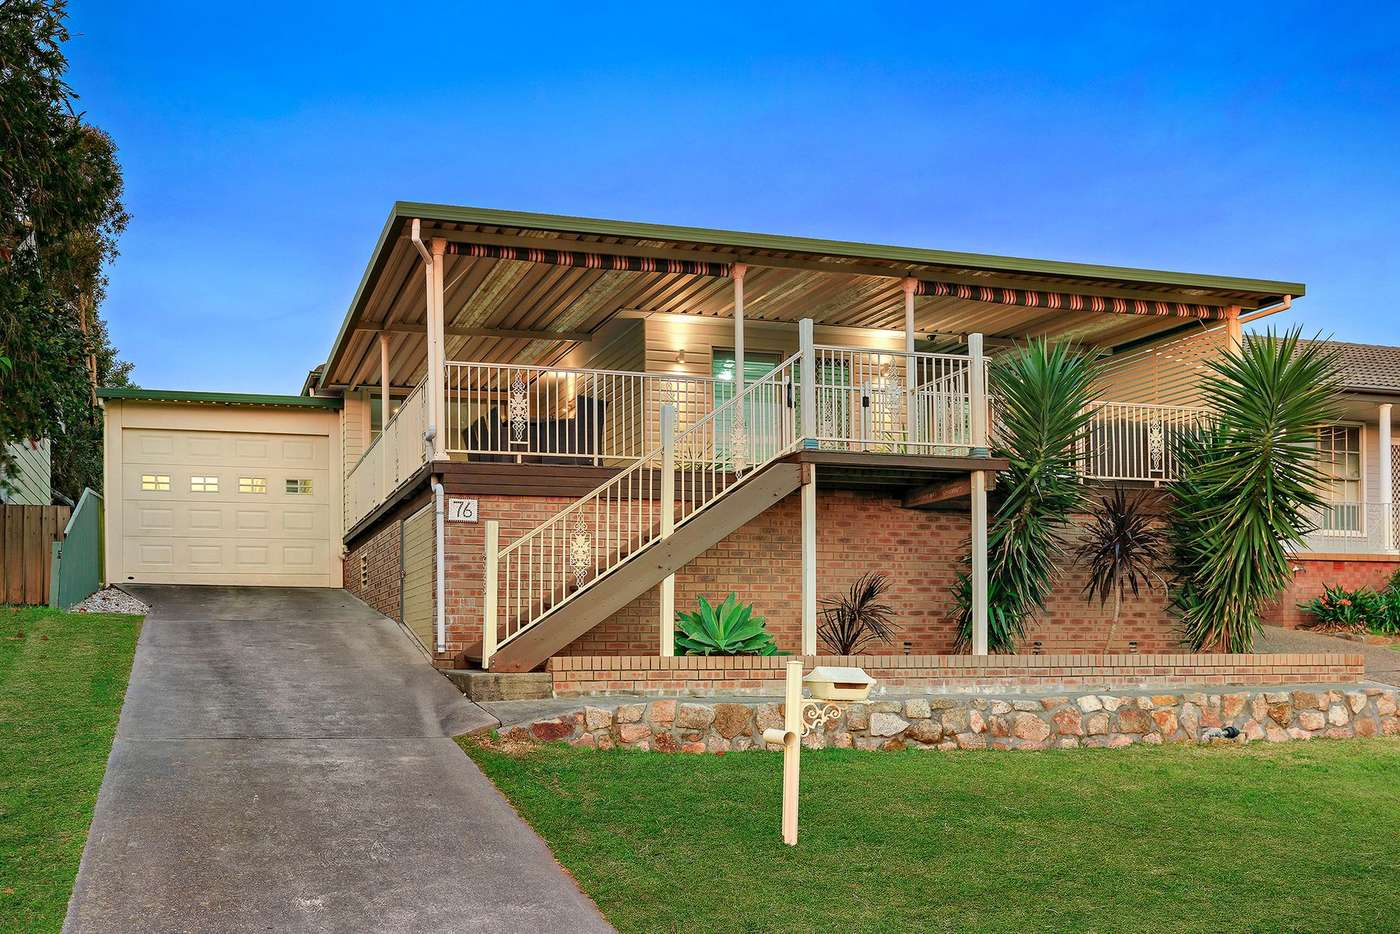 Main view of Homely house listing, 76 Marsden Street, Shortland NSW 2307